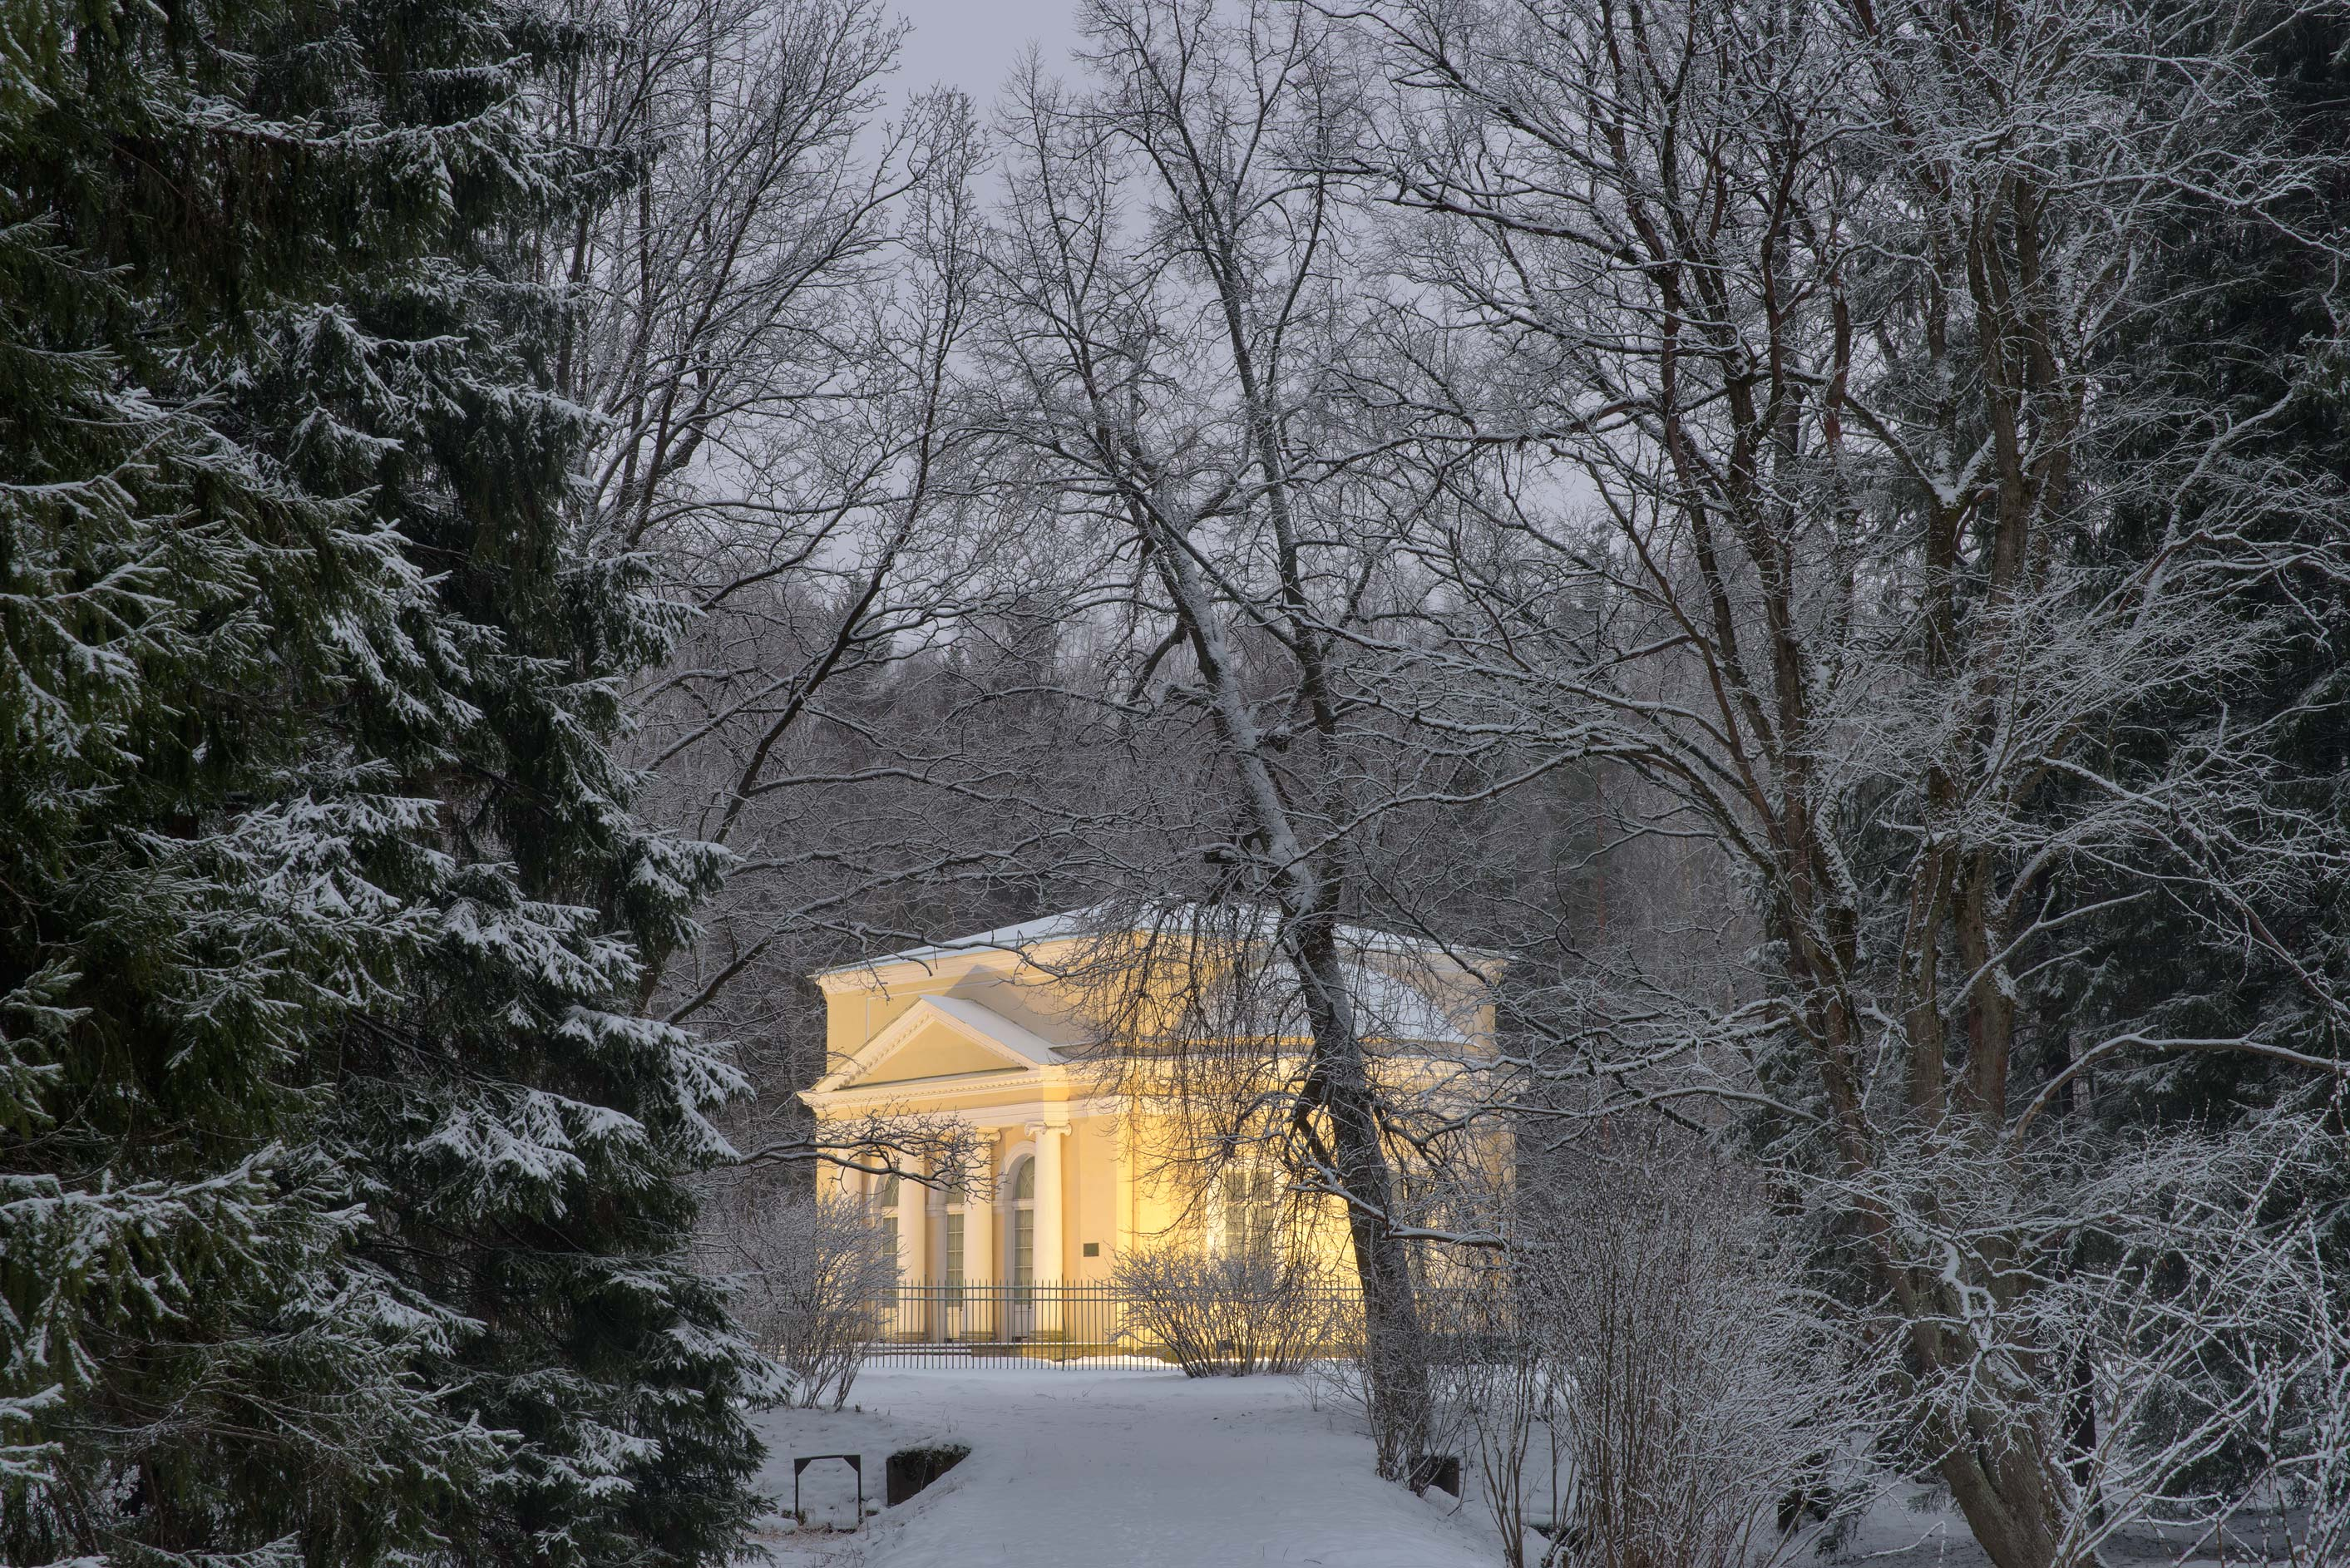 A pavilion from Krasnogo Molodtsa Alley in...suburb of St.Petersburg, Russia